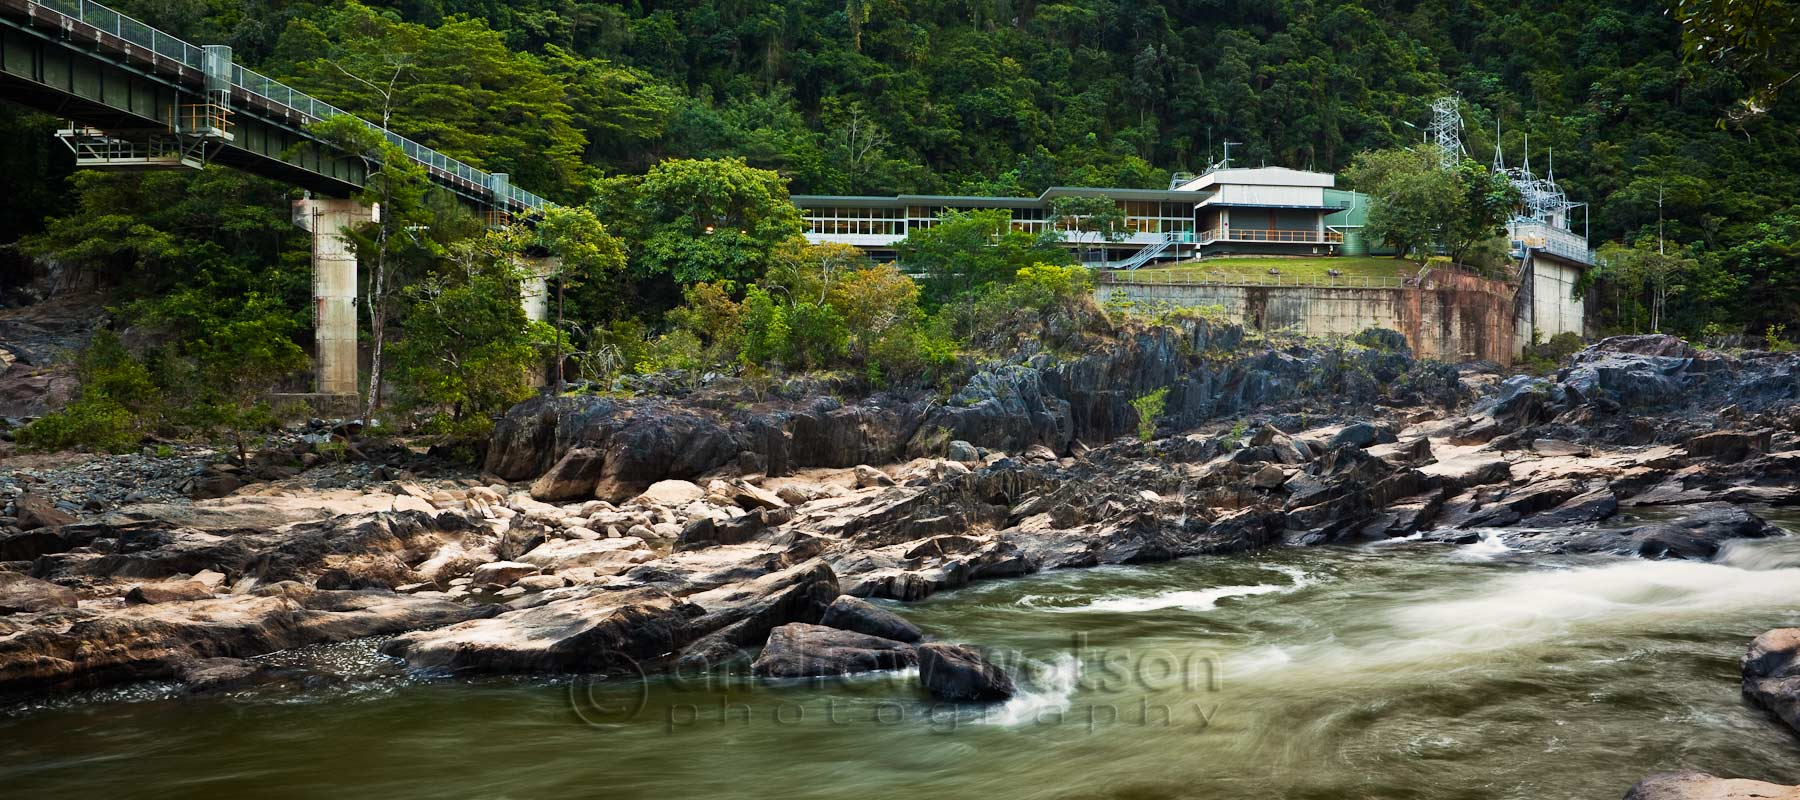 Architectural photography - Barron Gorge Hydro Power Station, Cairns